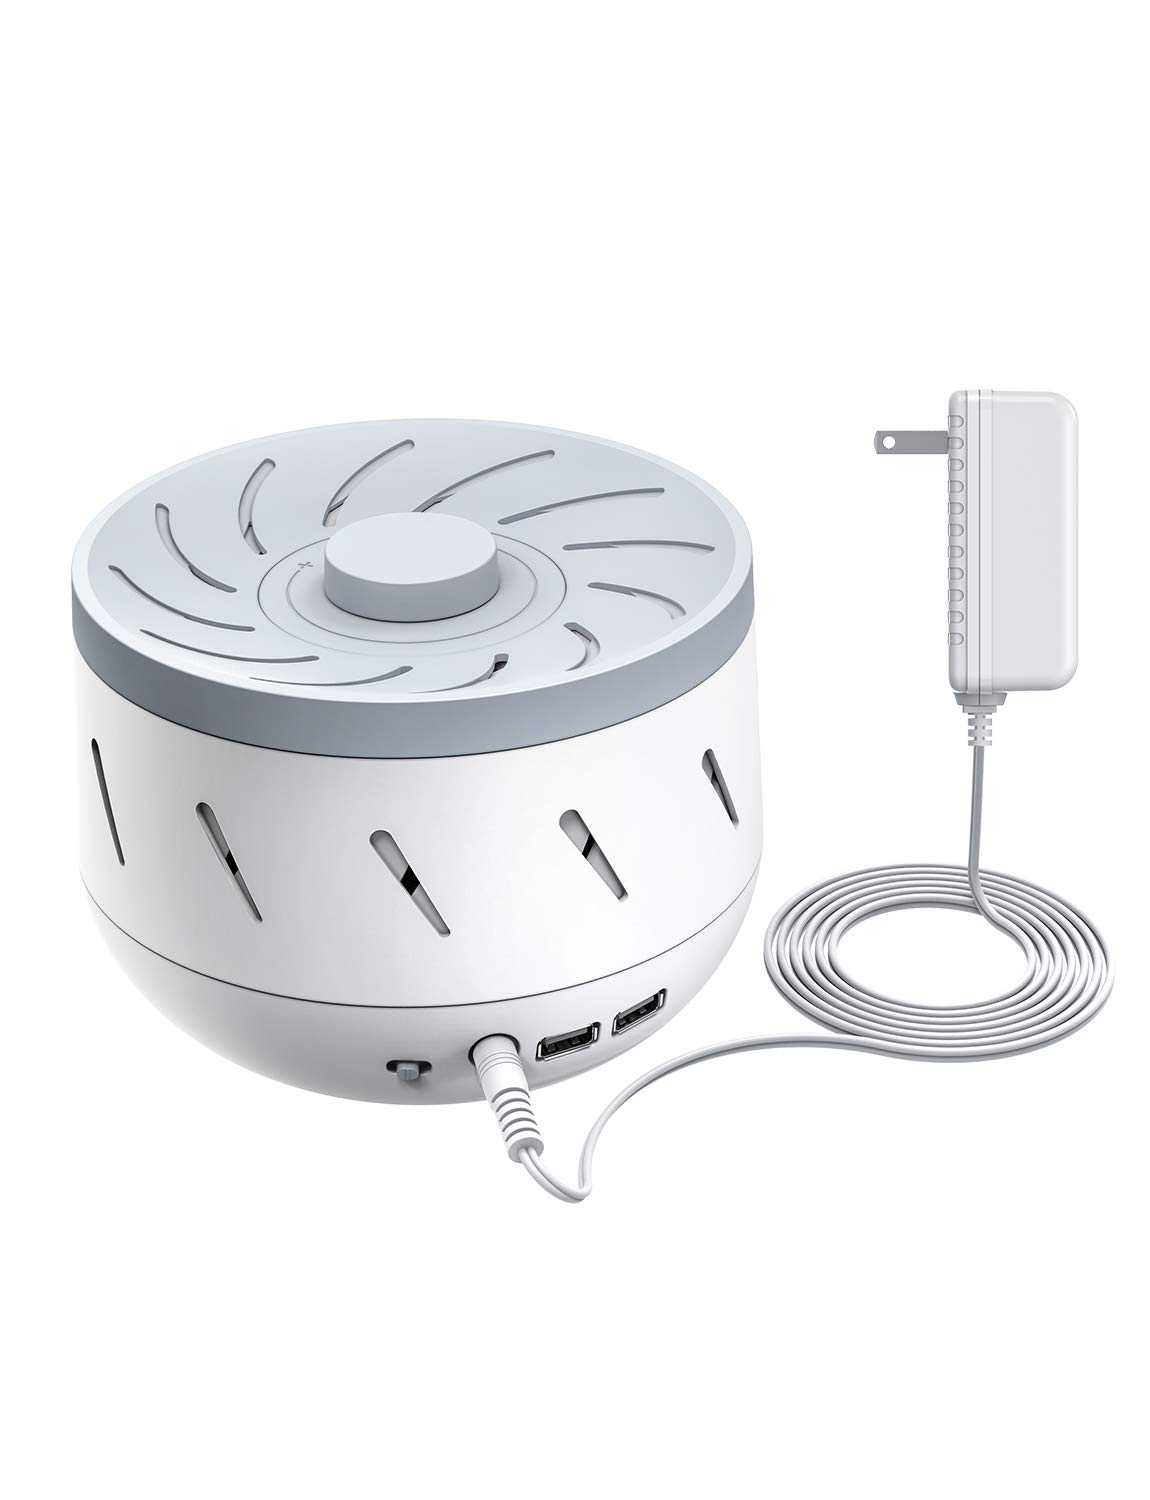 Mpow White Noise Sound Machine, Fan Noise Machine with 85 DB Adjusted Volume, White Noise Masking Sound Therapy for Baby, Sleep, Office Privacy, 2 USB Output, Auto Off Timer, AC Adapter Included by Mpow